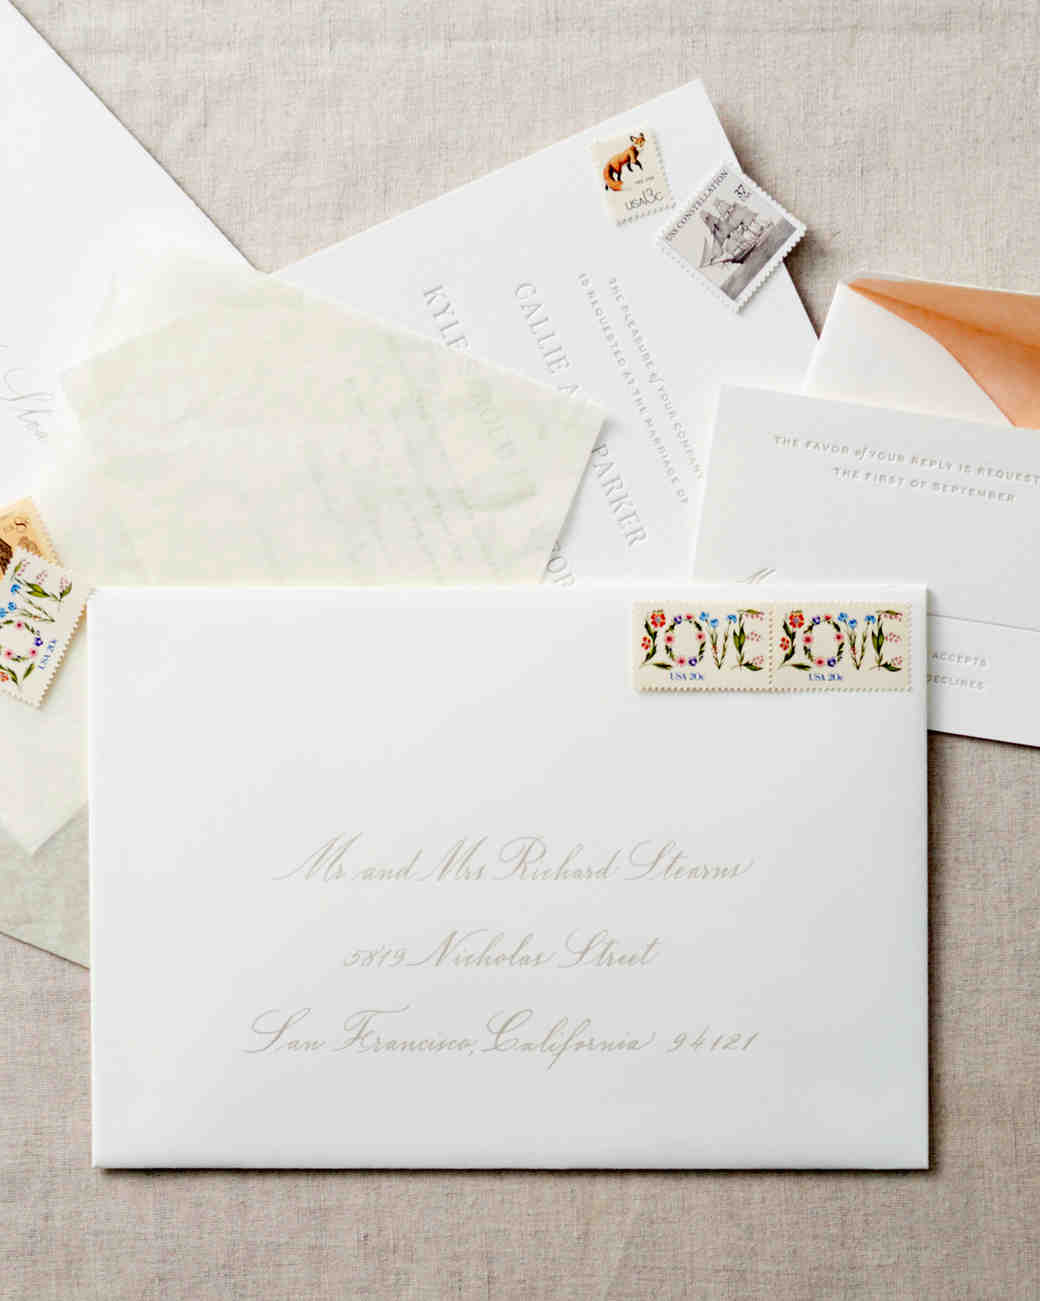 How To Address Guests On Wedding Invitation Envelopes | Martha Stewart  Weddings